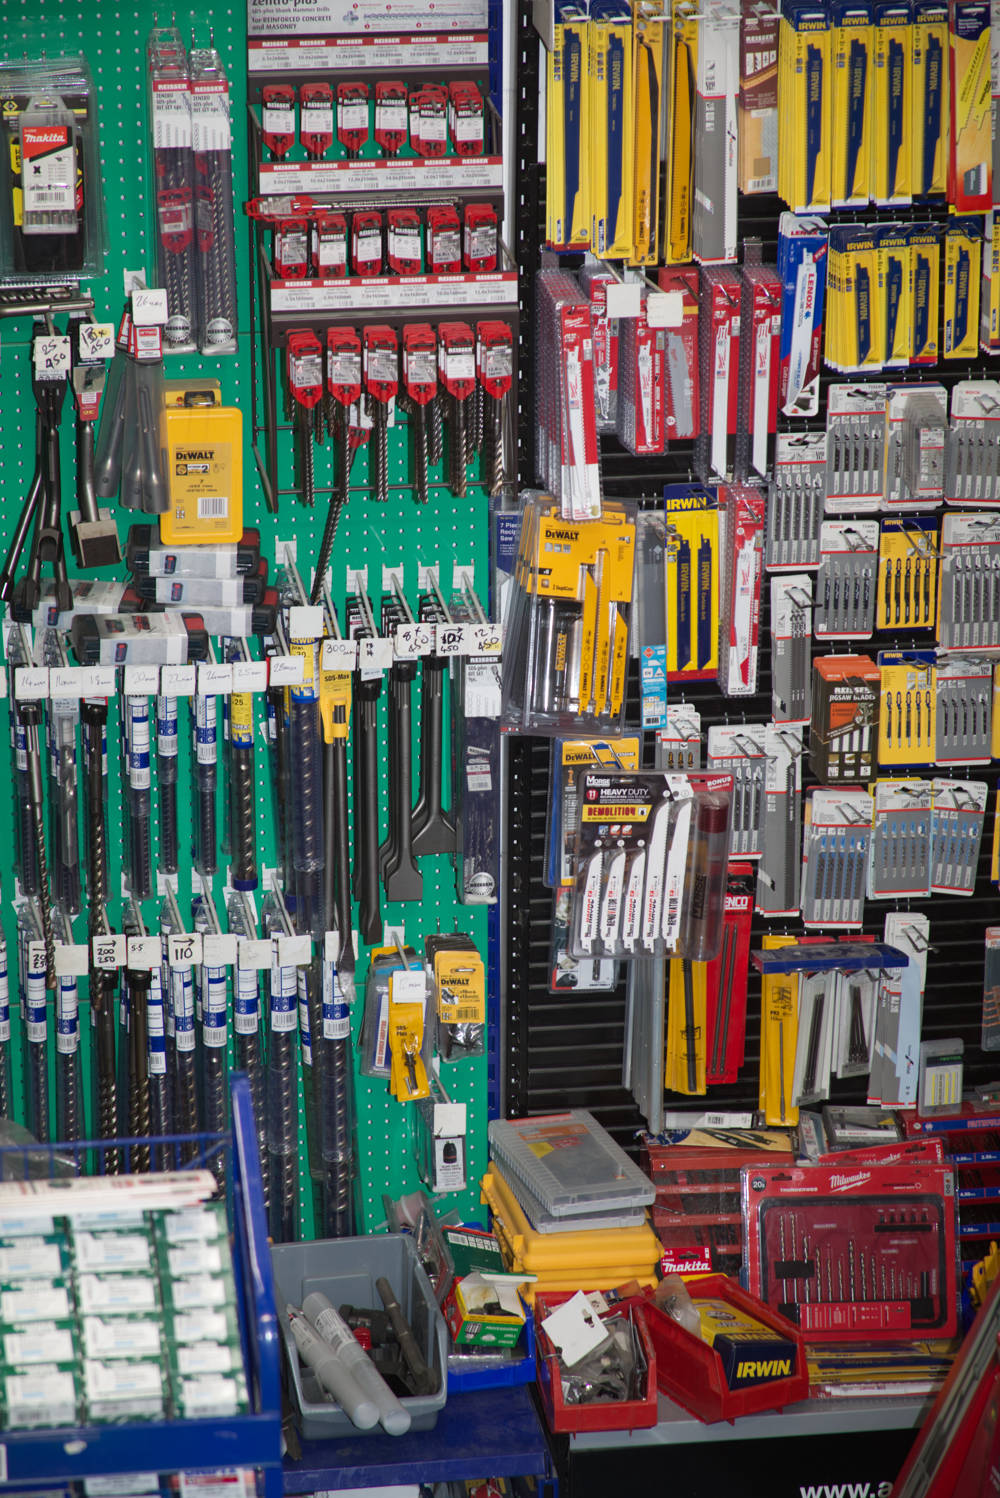 Variety of tools on shelf